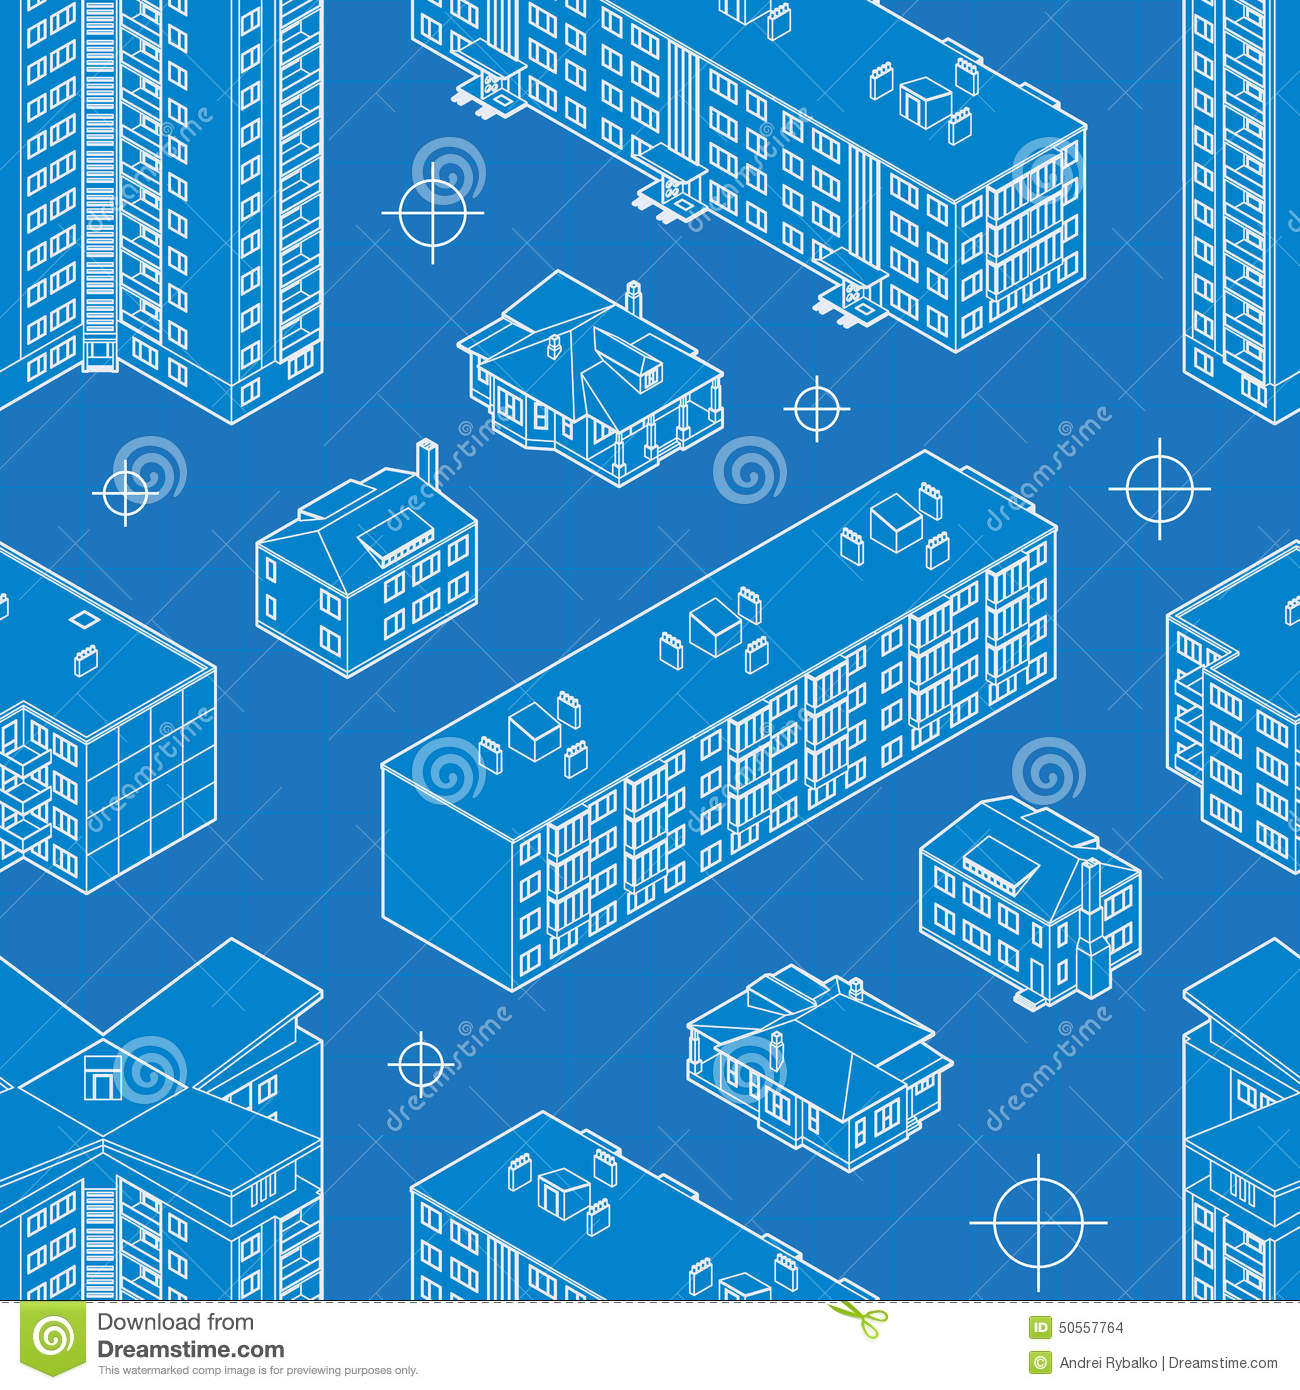 Blueprint dwelling buildings seamless pattern stock vector blueprint dwelling buildings seamless pattern malvernweather